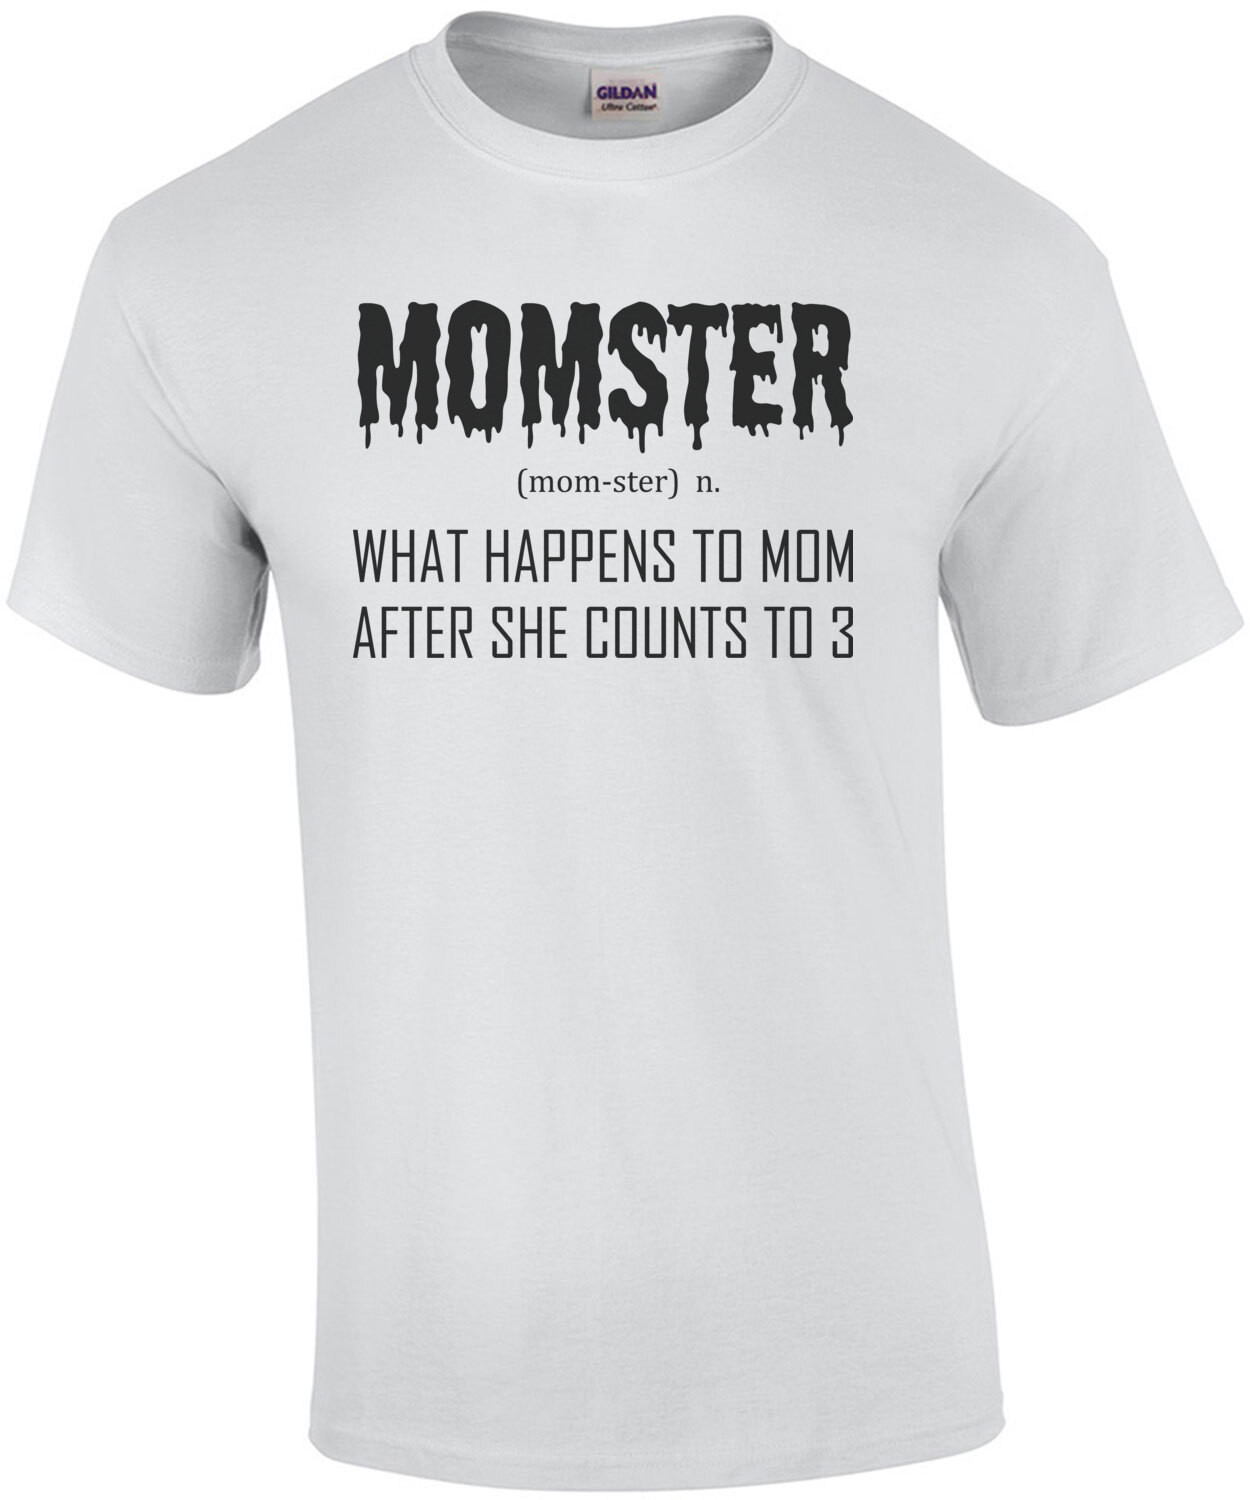 Momster Definition - noun. What happens to mom after she counts to 3 - funny mom t-shirt